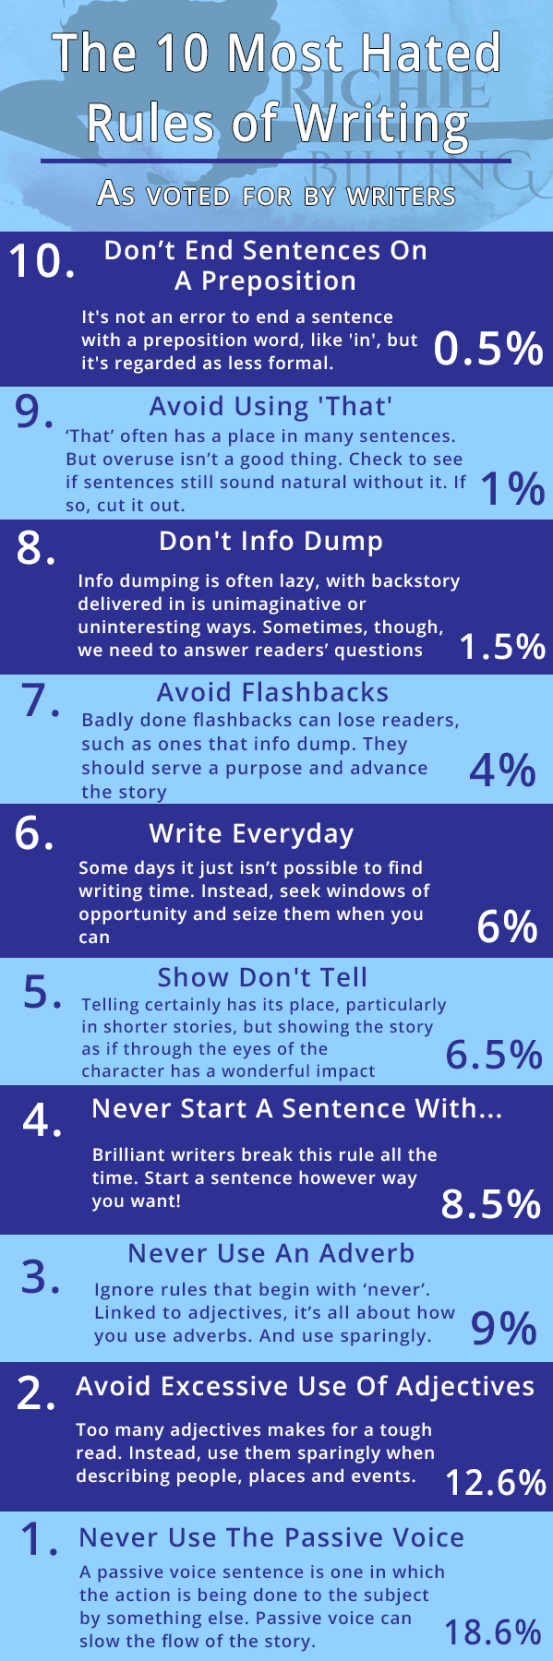 rules of writing infographic